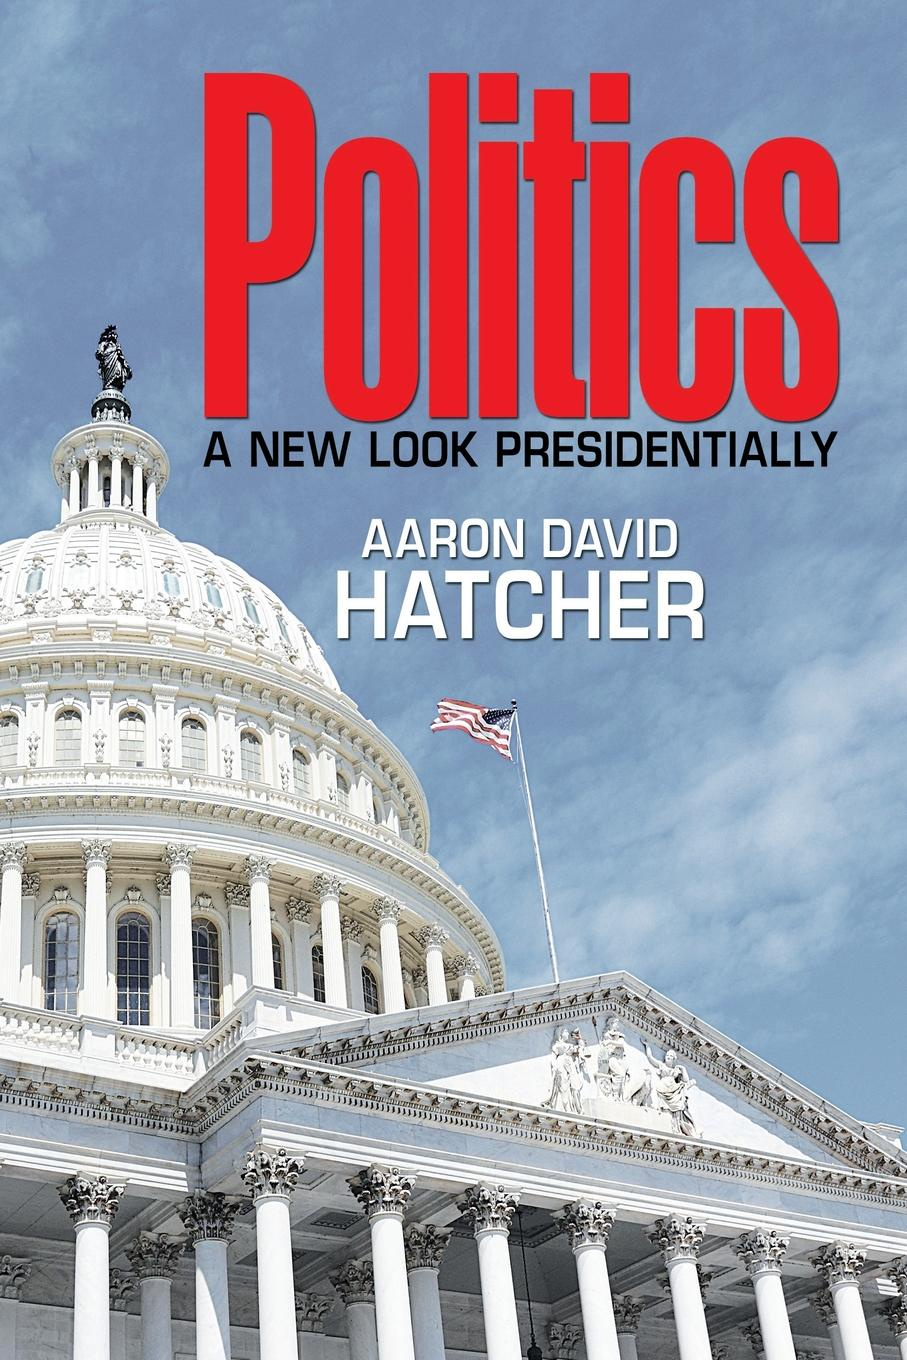 Aaron David Hatcher Politics. A New Look Presidentially